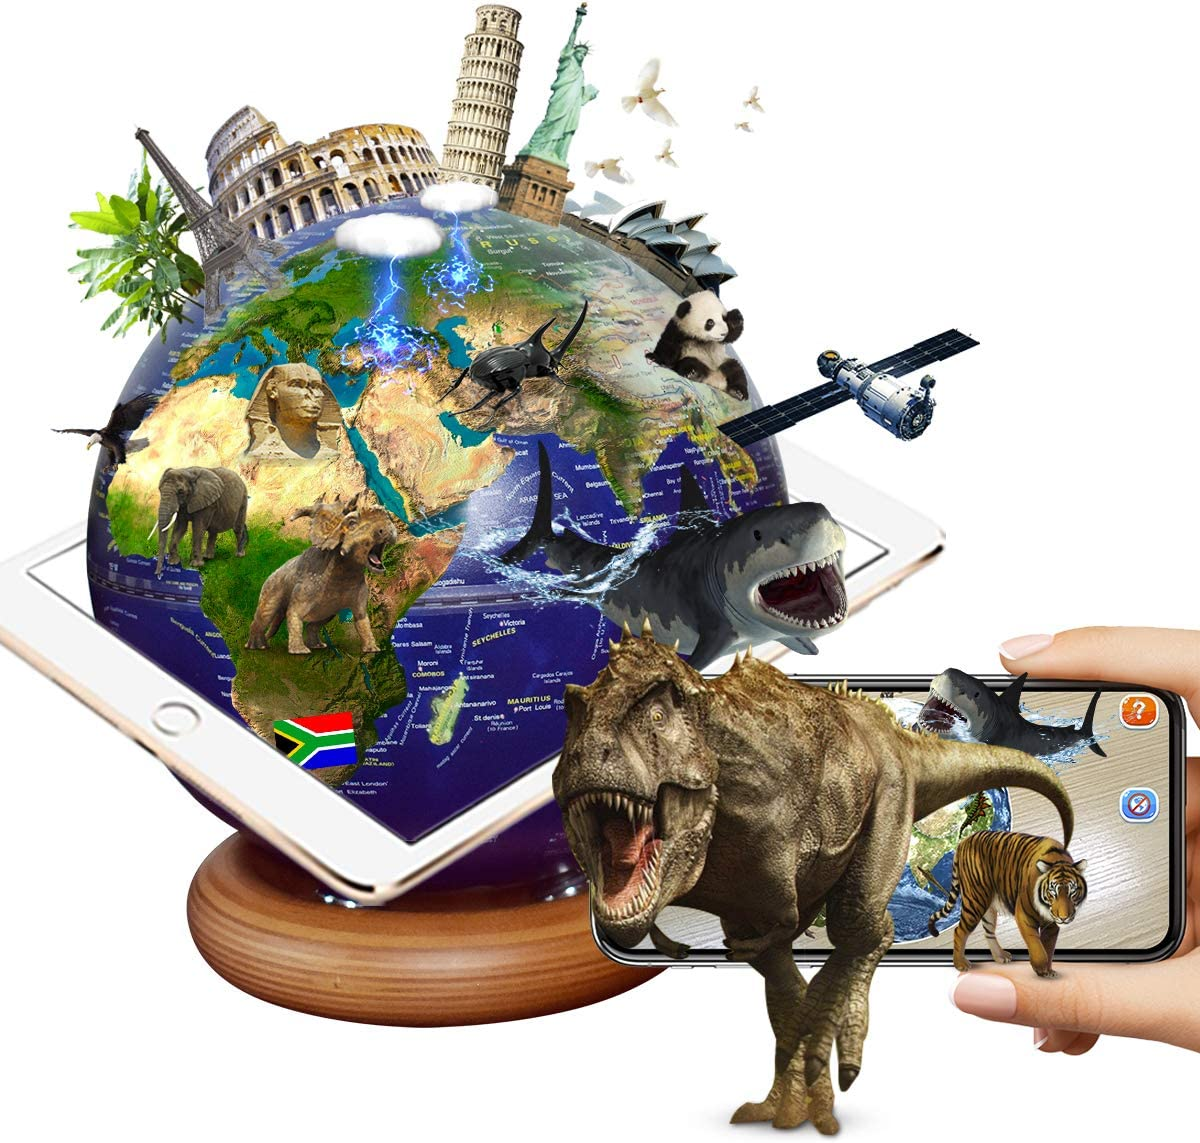 FUN GLOBE 3 in 1 Illuminated AR Explore The World Globe Desktop Decoration Geographic Interactive Earth Globes Office Supplies Holiday Gift with Adjustable LED & Light Music for Kids & Adult (Navy-2)